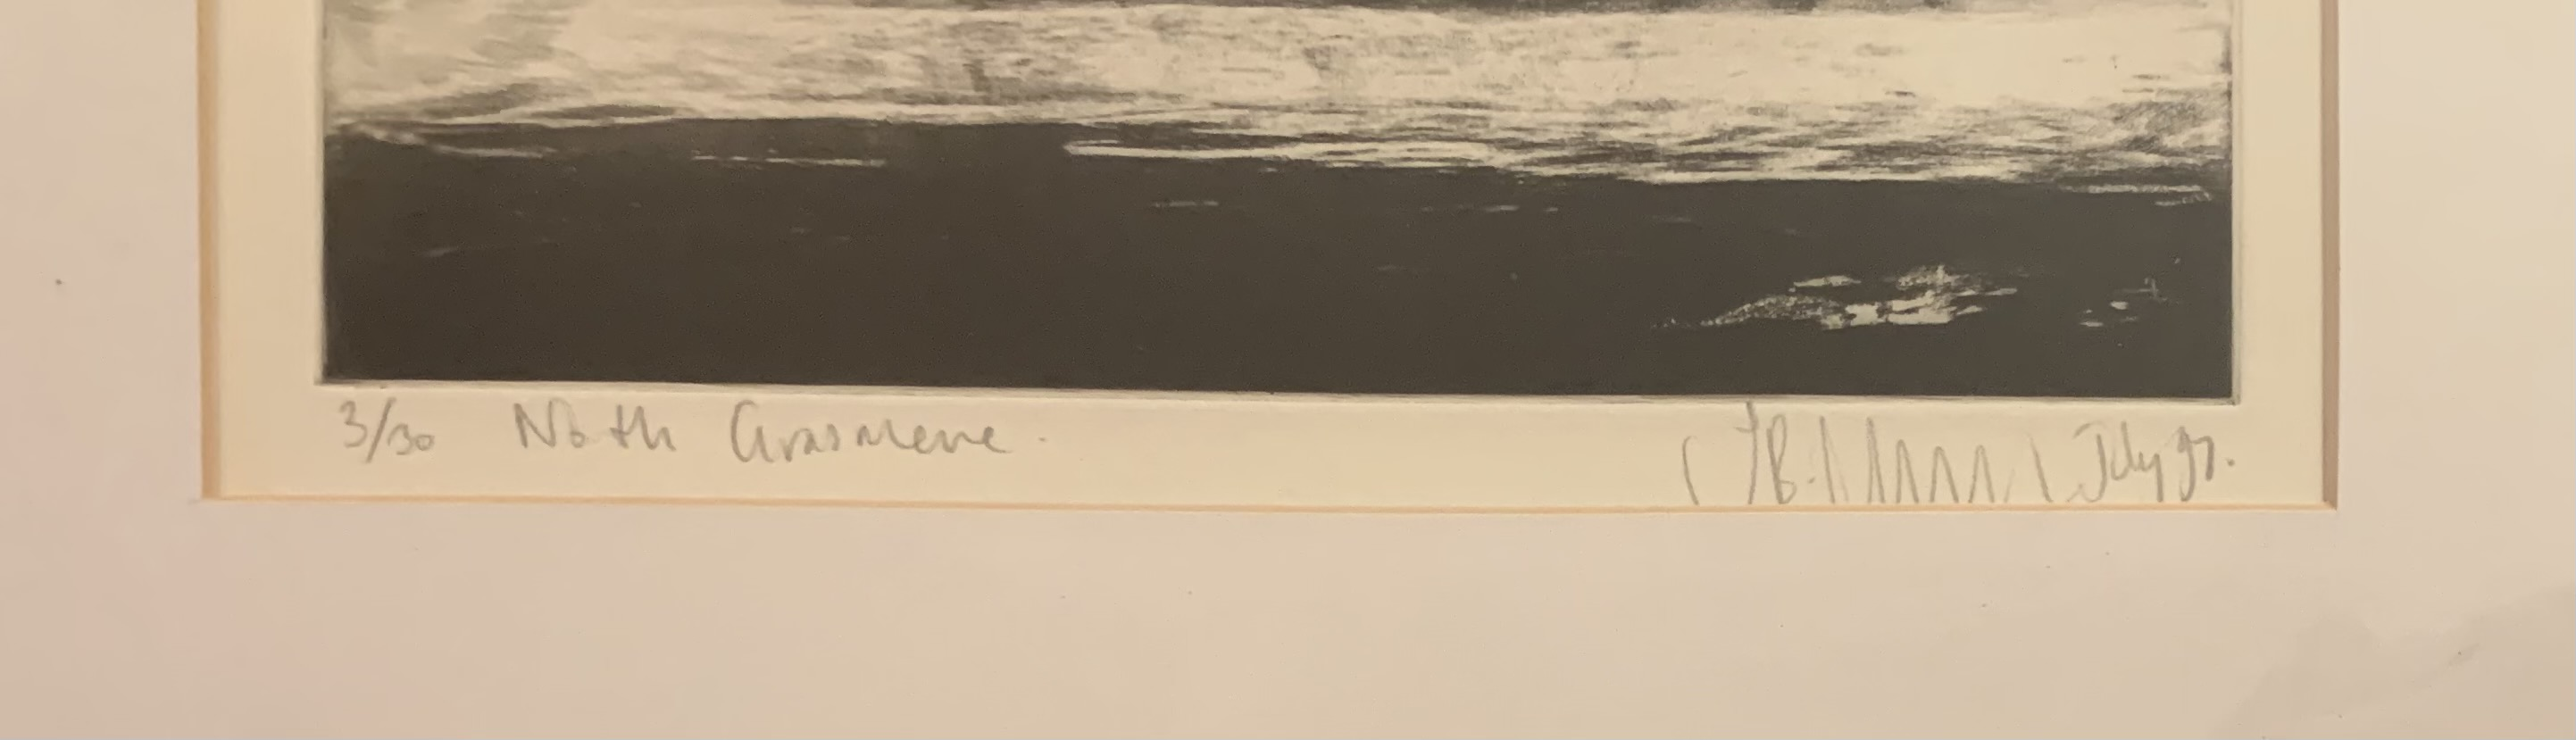 """Signed lithograph 'North Grasmere', no. 3/30. Image 9.5"""" x 7"""", frame 17.5"""" x 13.5"""". Good condition - Image 2 of 3"""